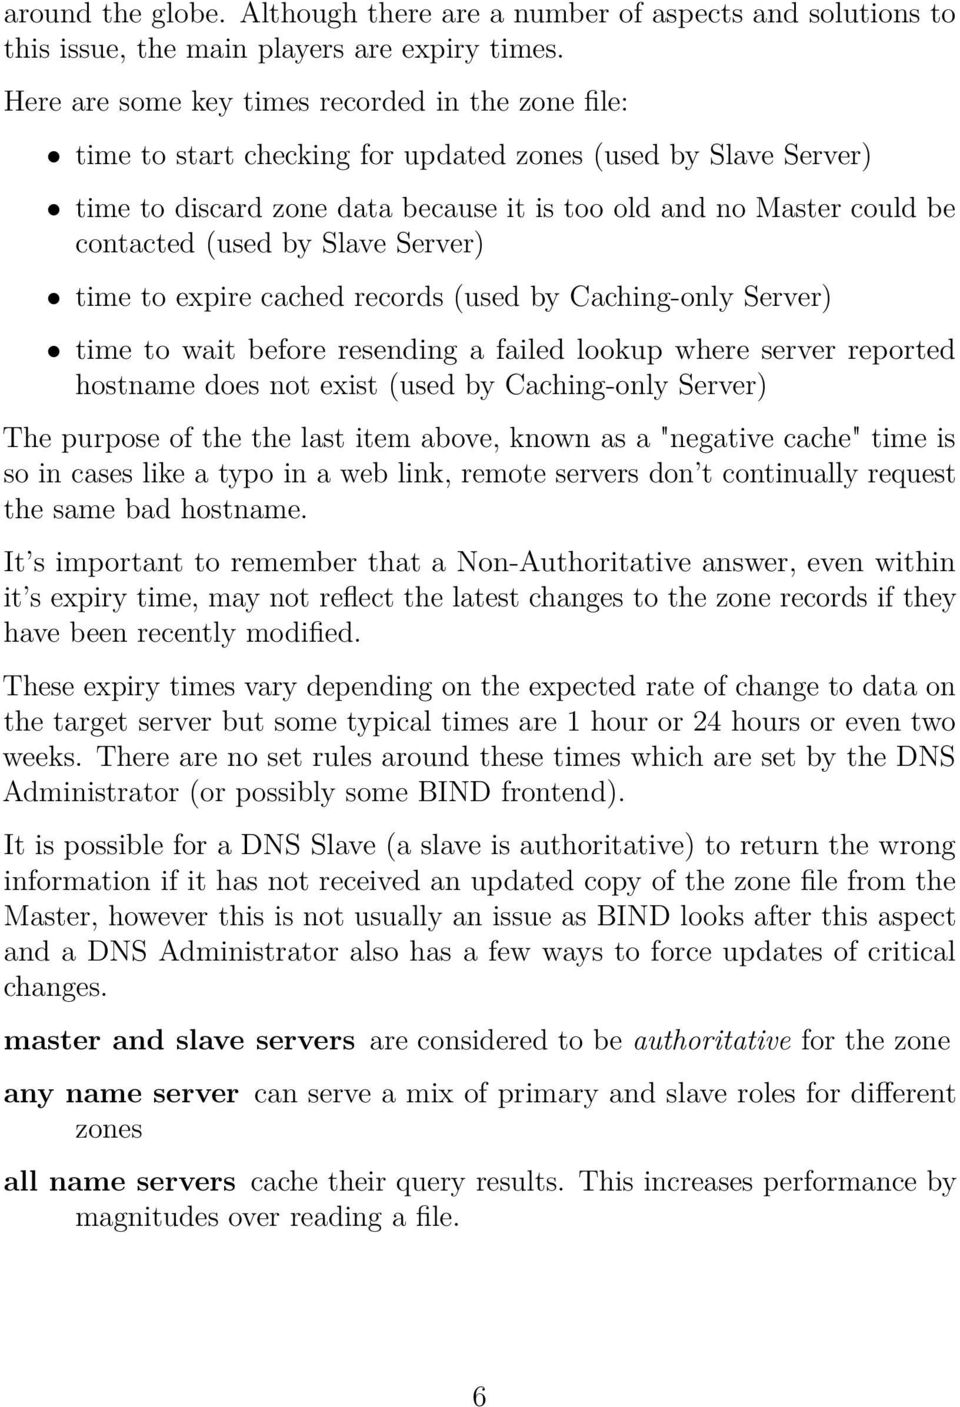 (used by Slave Server) time to expire cached records (used by Caching-only Server) time to wait before resending a failed lookup where server reported hostname does not exist (used by Caching-only